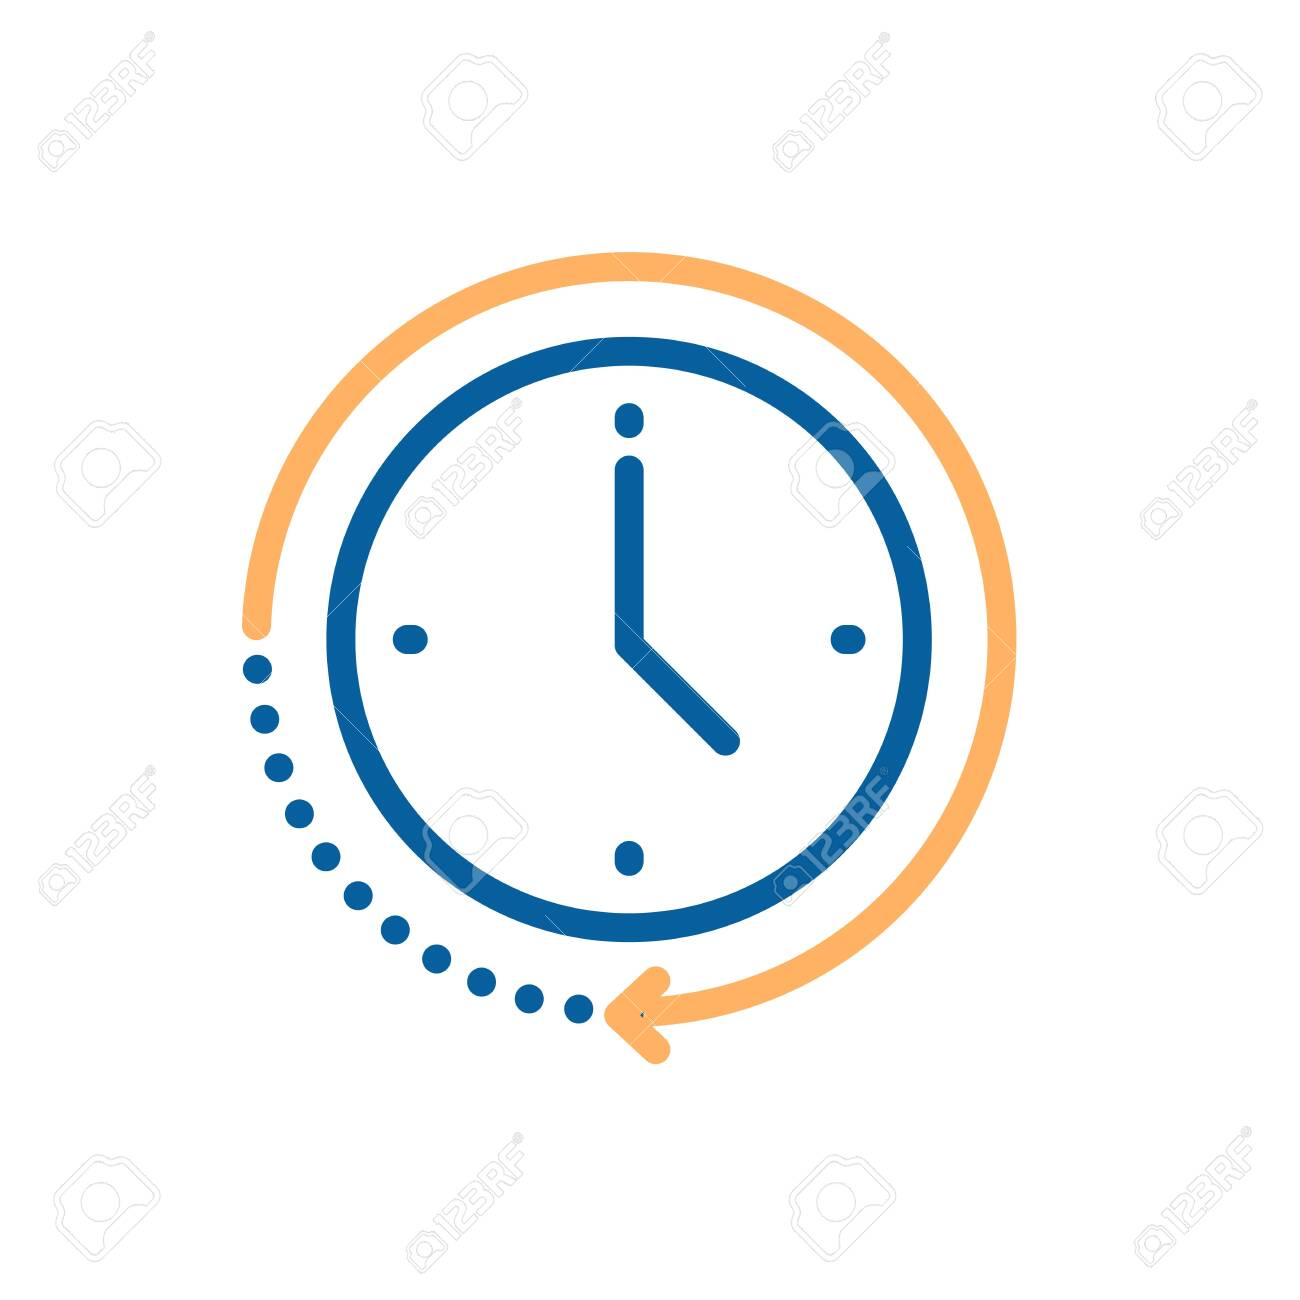 Clock icon with circular motion shape with arrow indicating passage of time. Vector illustration for concepts of time, progress, deadline, express delivery, time limit, urgency - 126216872